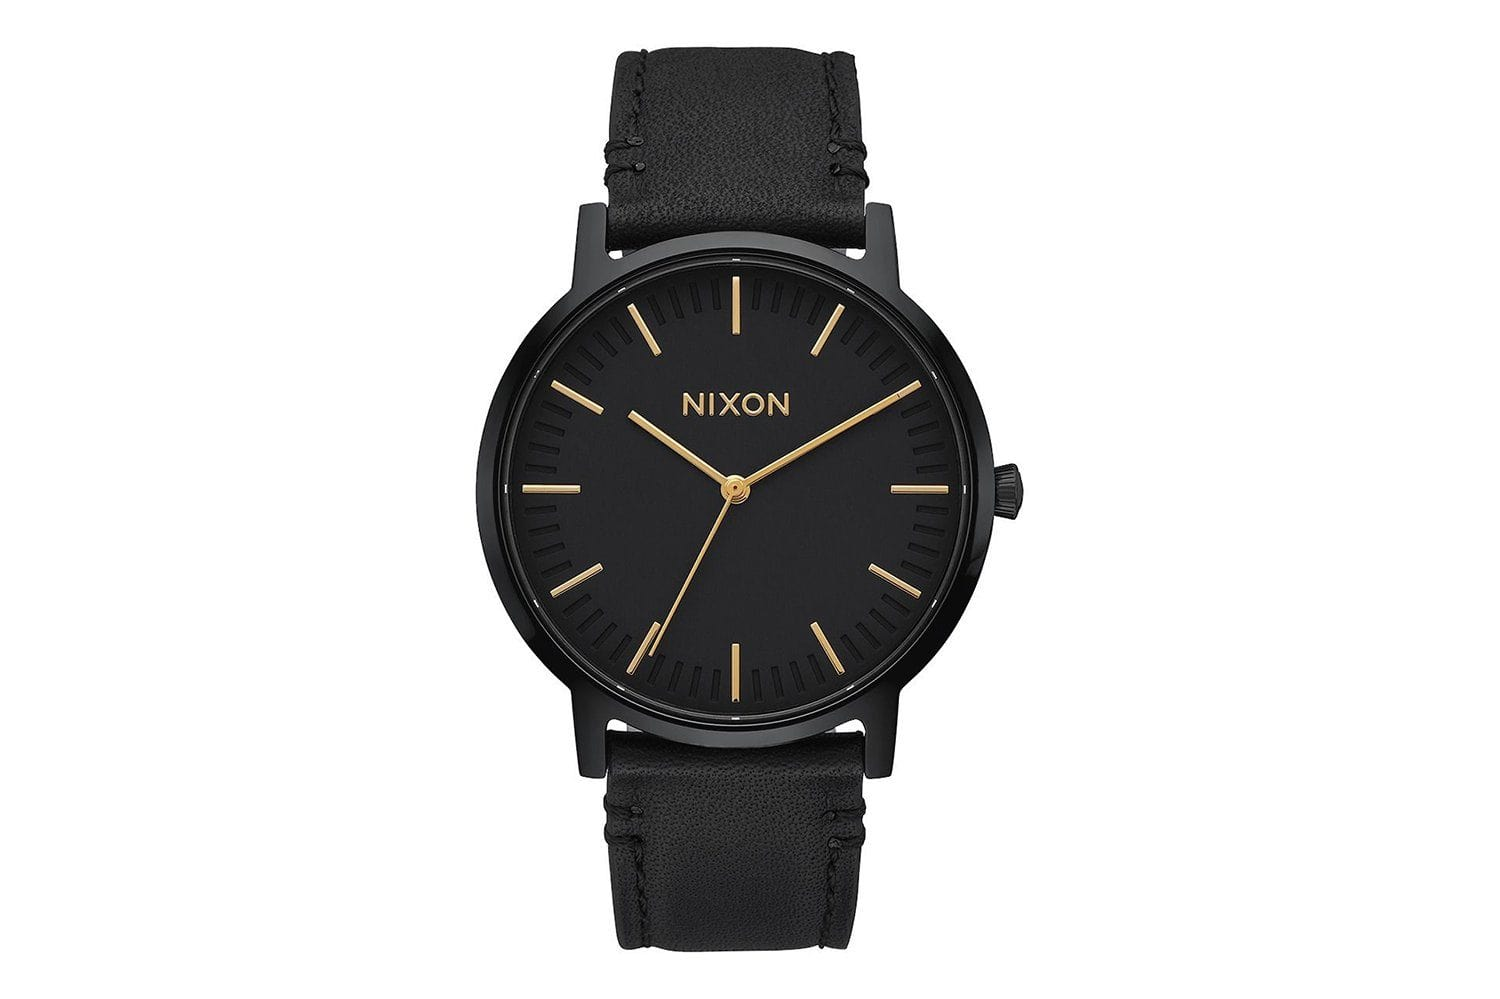 PORTER LEATHER-A1058 1031 WATCHES NIXON